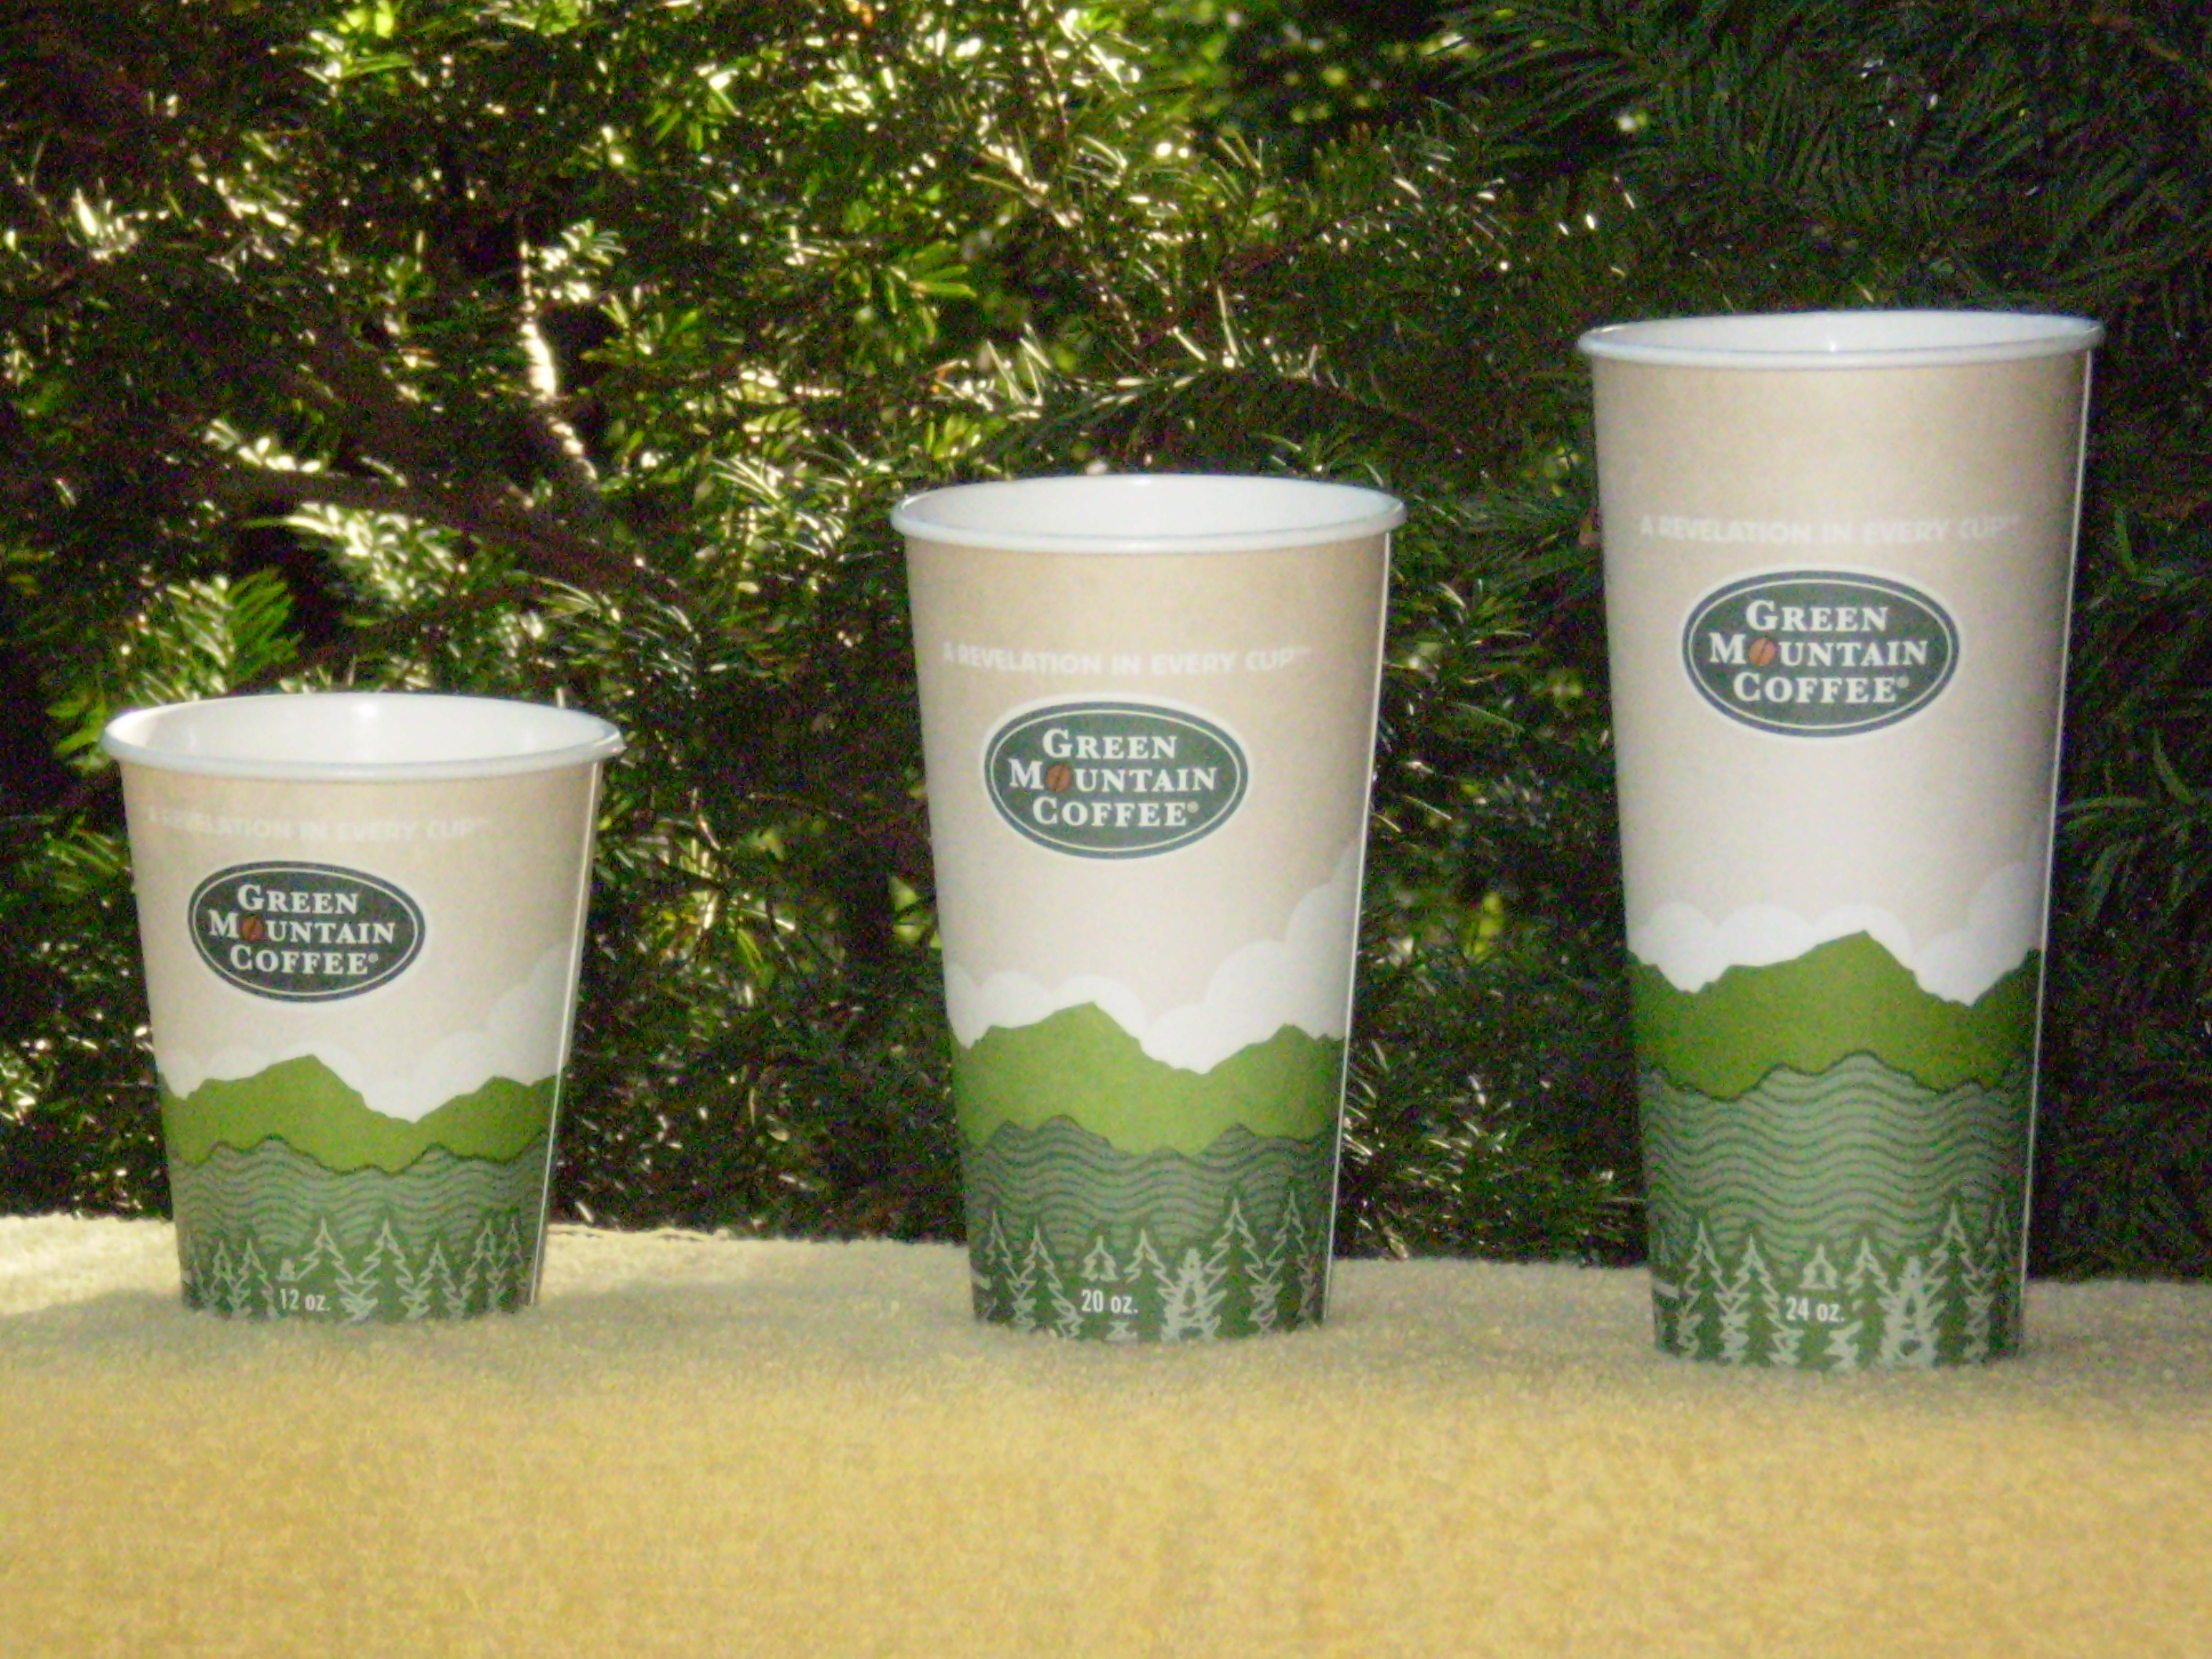 Small, Medium, Large Coffee: Revelations Can Come in all Sized Cups